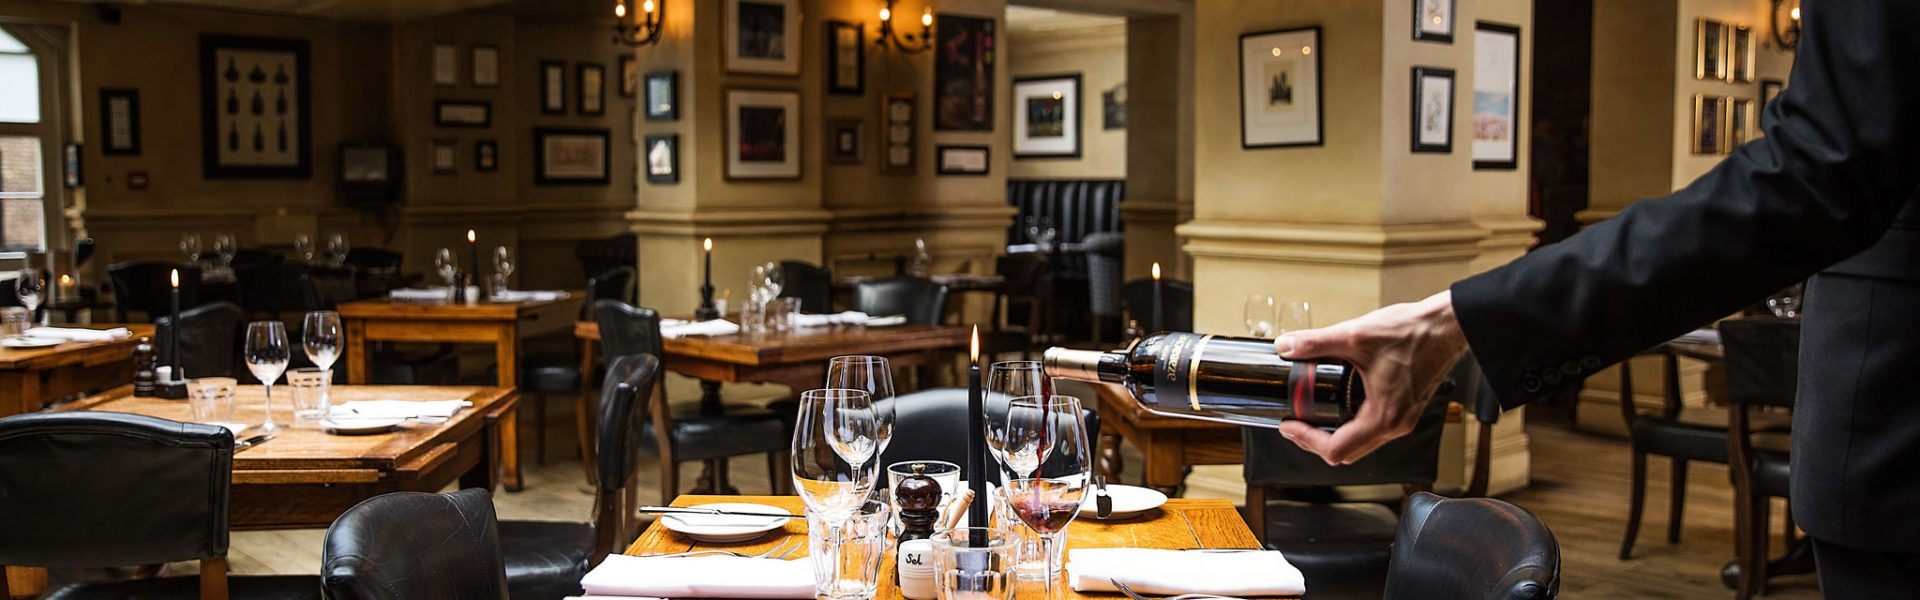 Hotel du Vin York | North Yorkshire